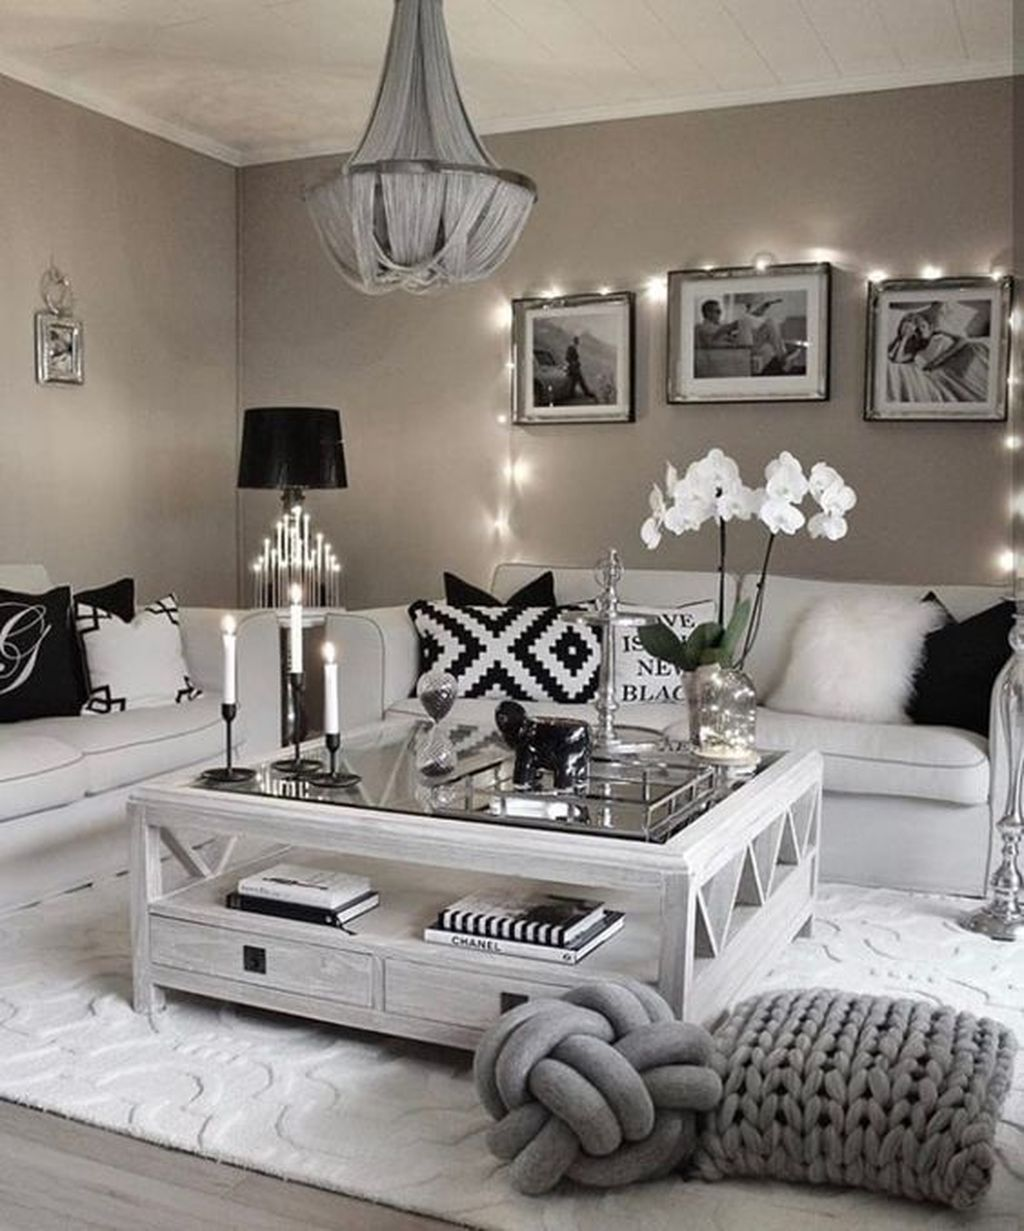 45 Incredible Living Room Design Ideas images